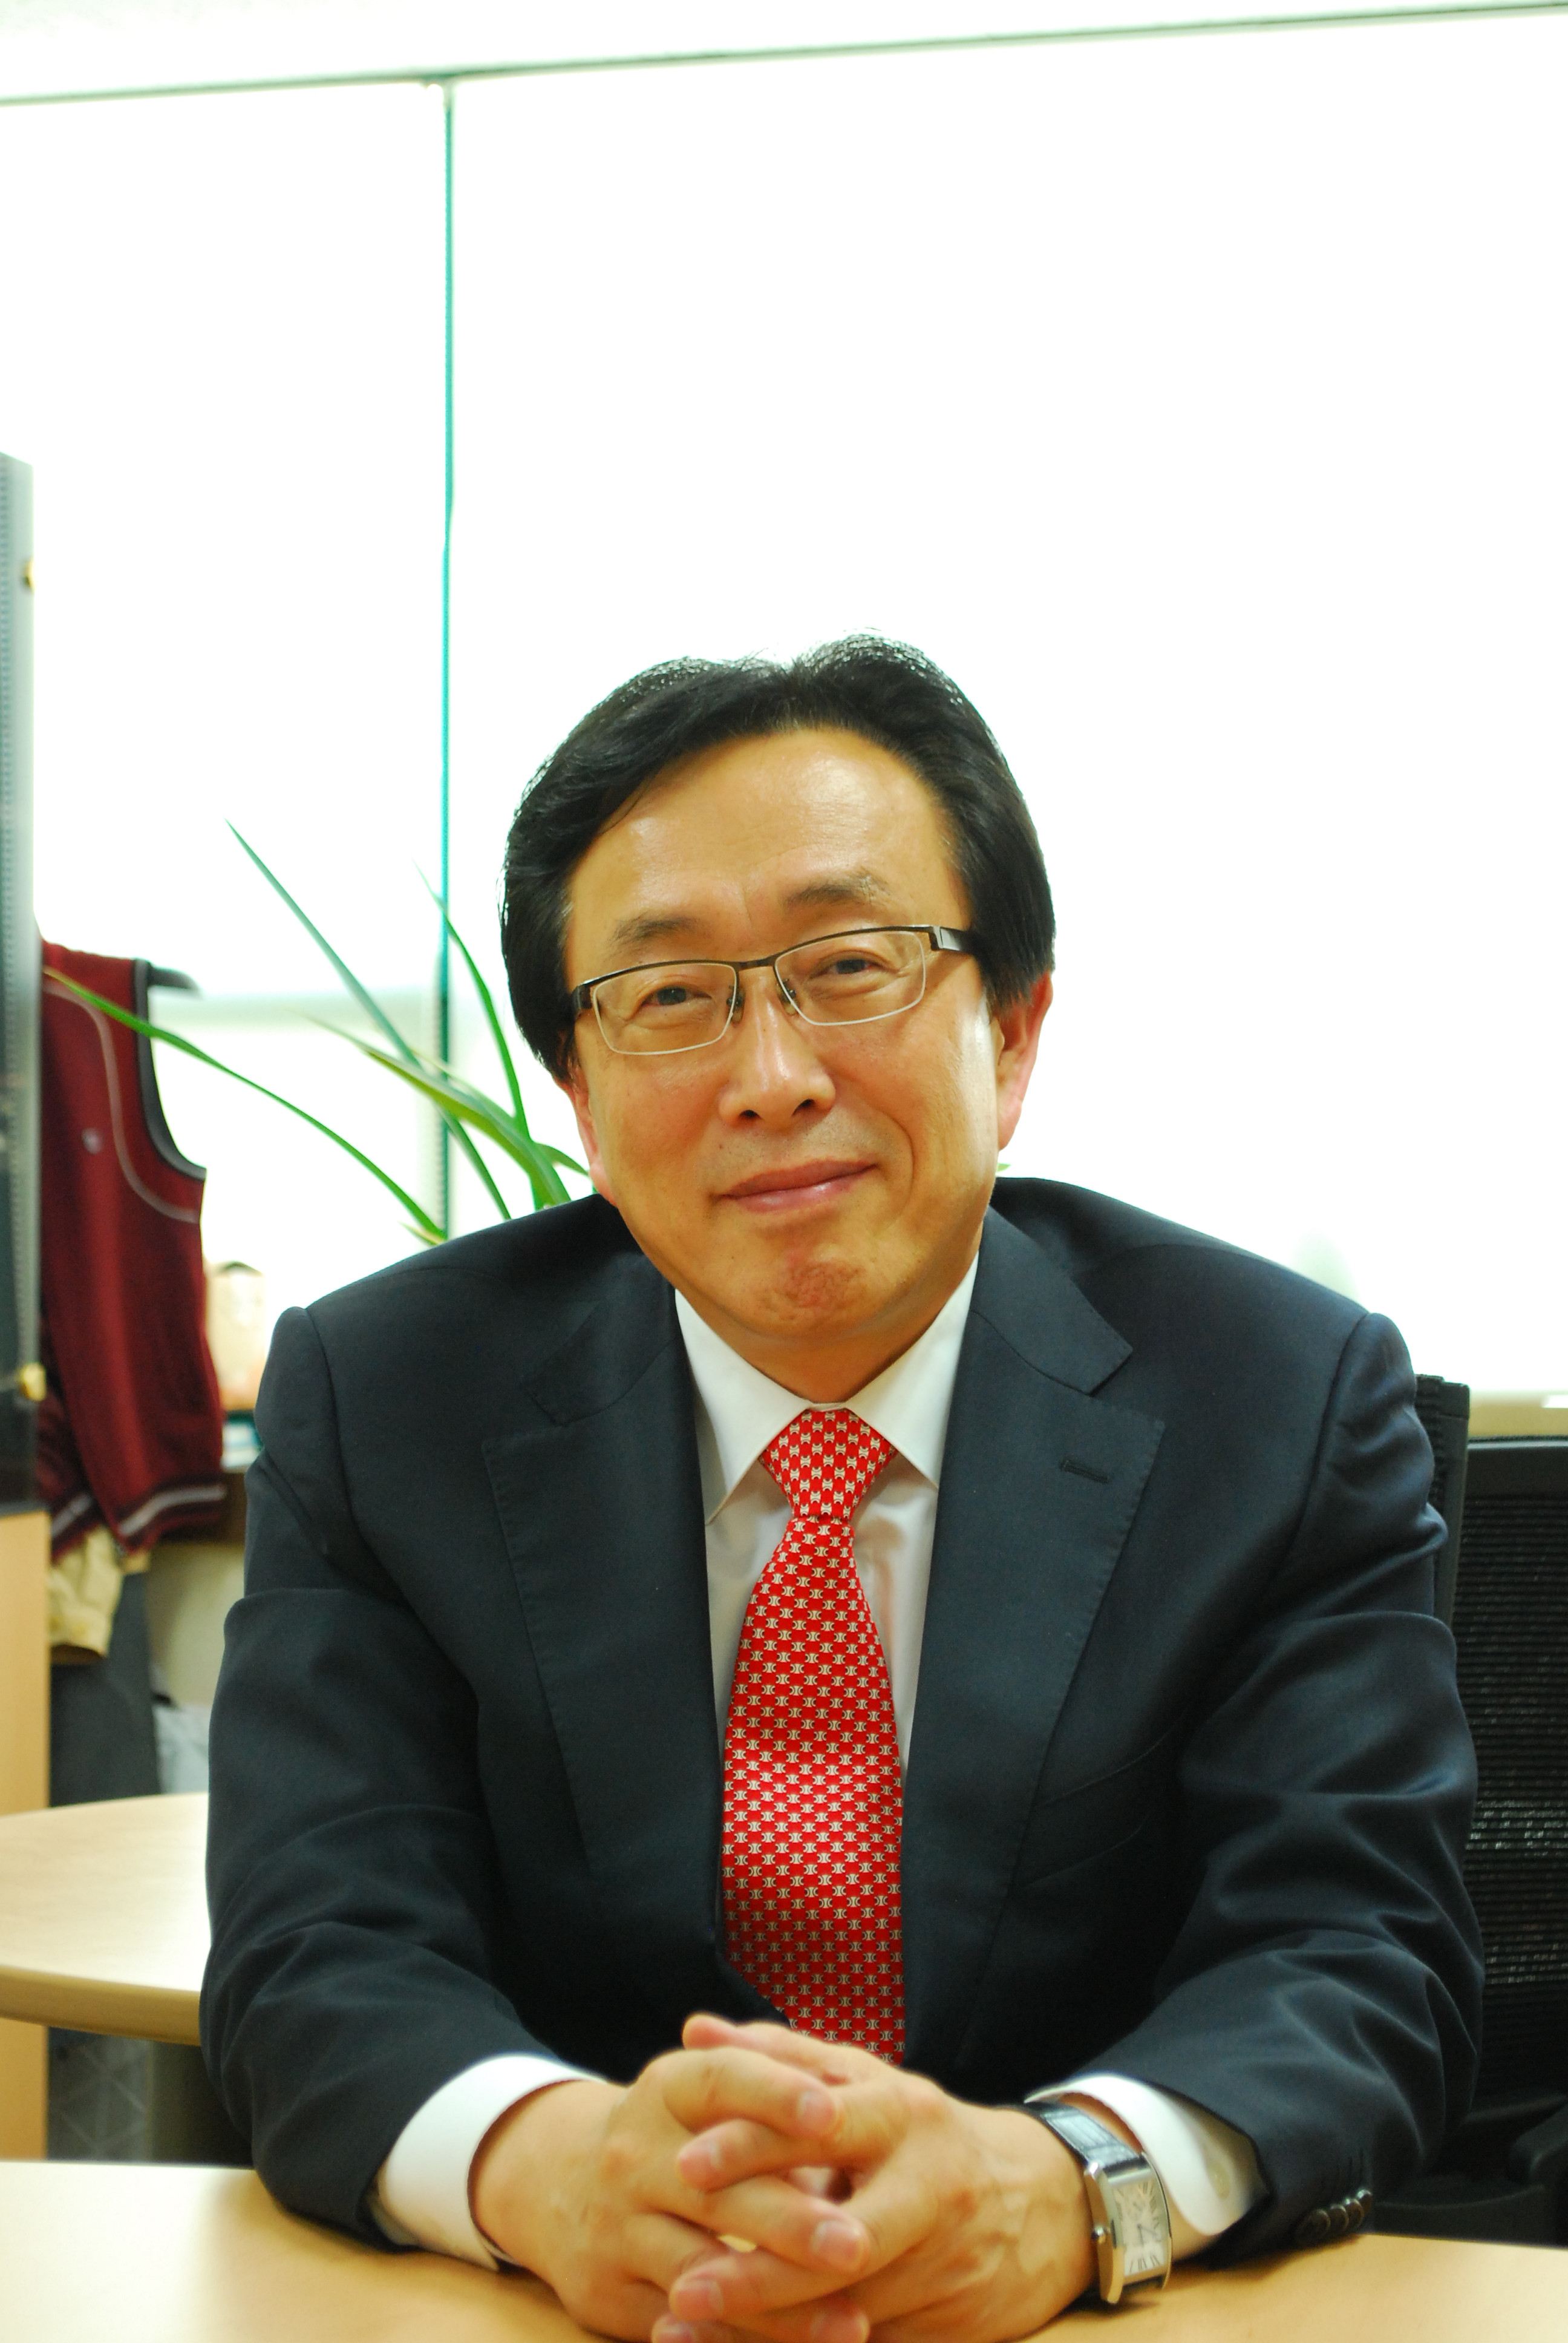 Lee Yong-sung has been reappointed as chairman of the Korea Venture Capital Association (KVCA).